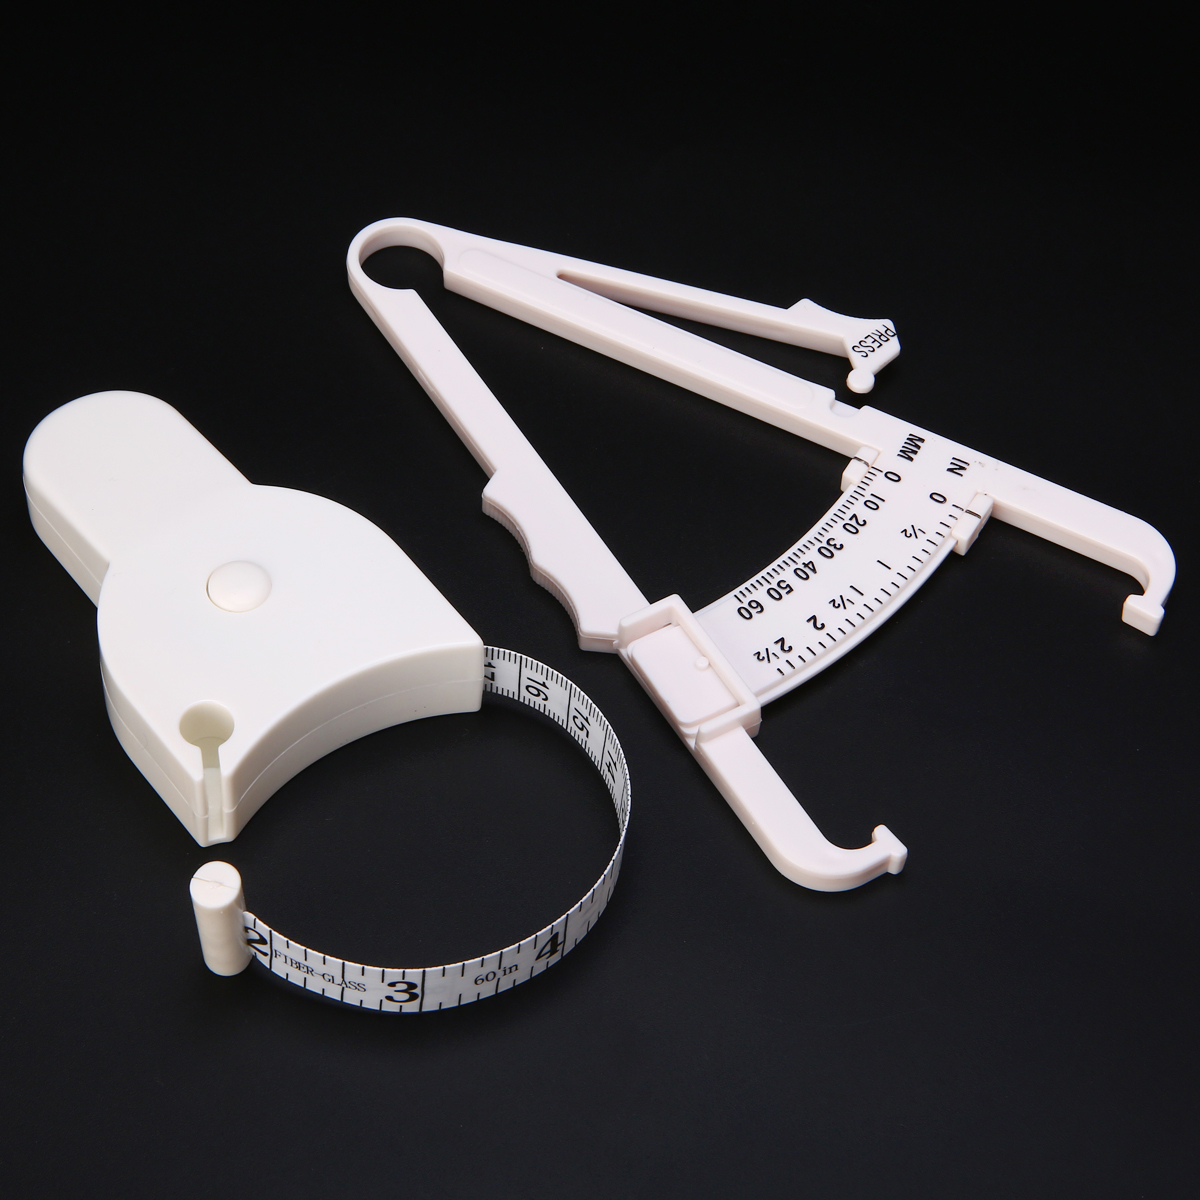 2PCS Body Fat Caliper Mass Monitors Measuring Tape Tester Fitness Lose Weight Fitness Equipments Racks Accessories